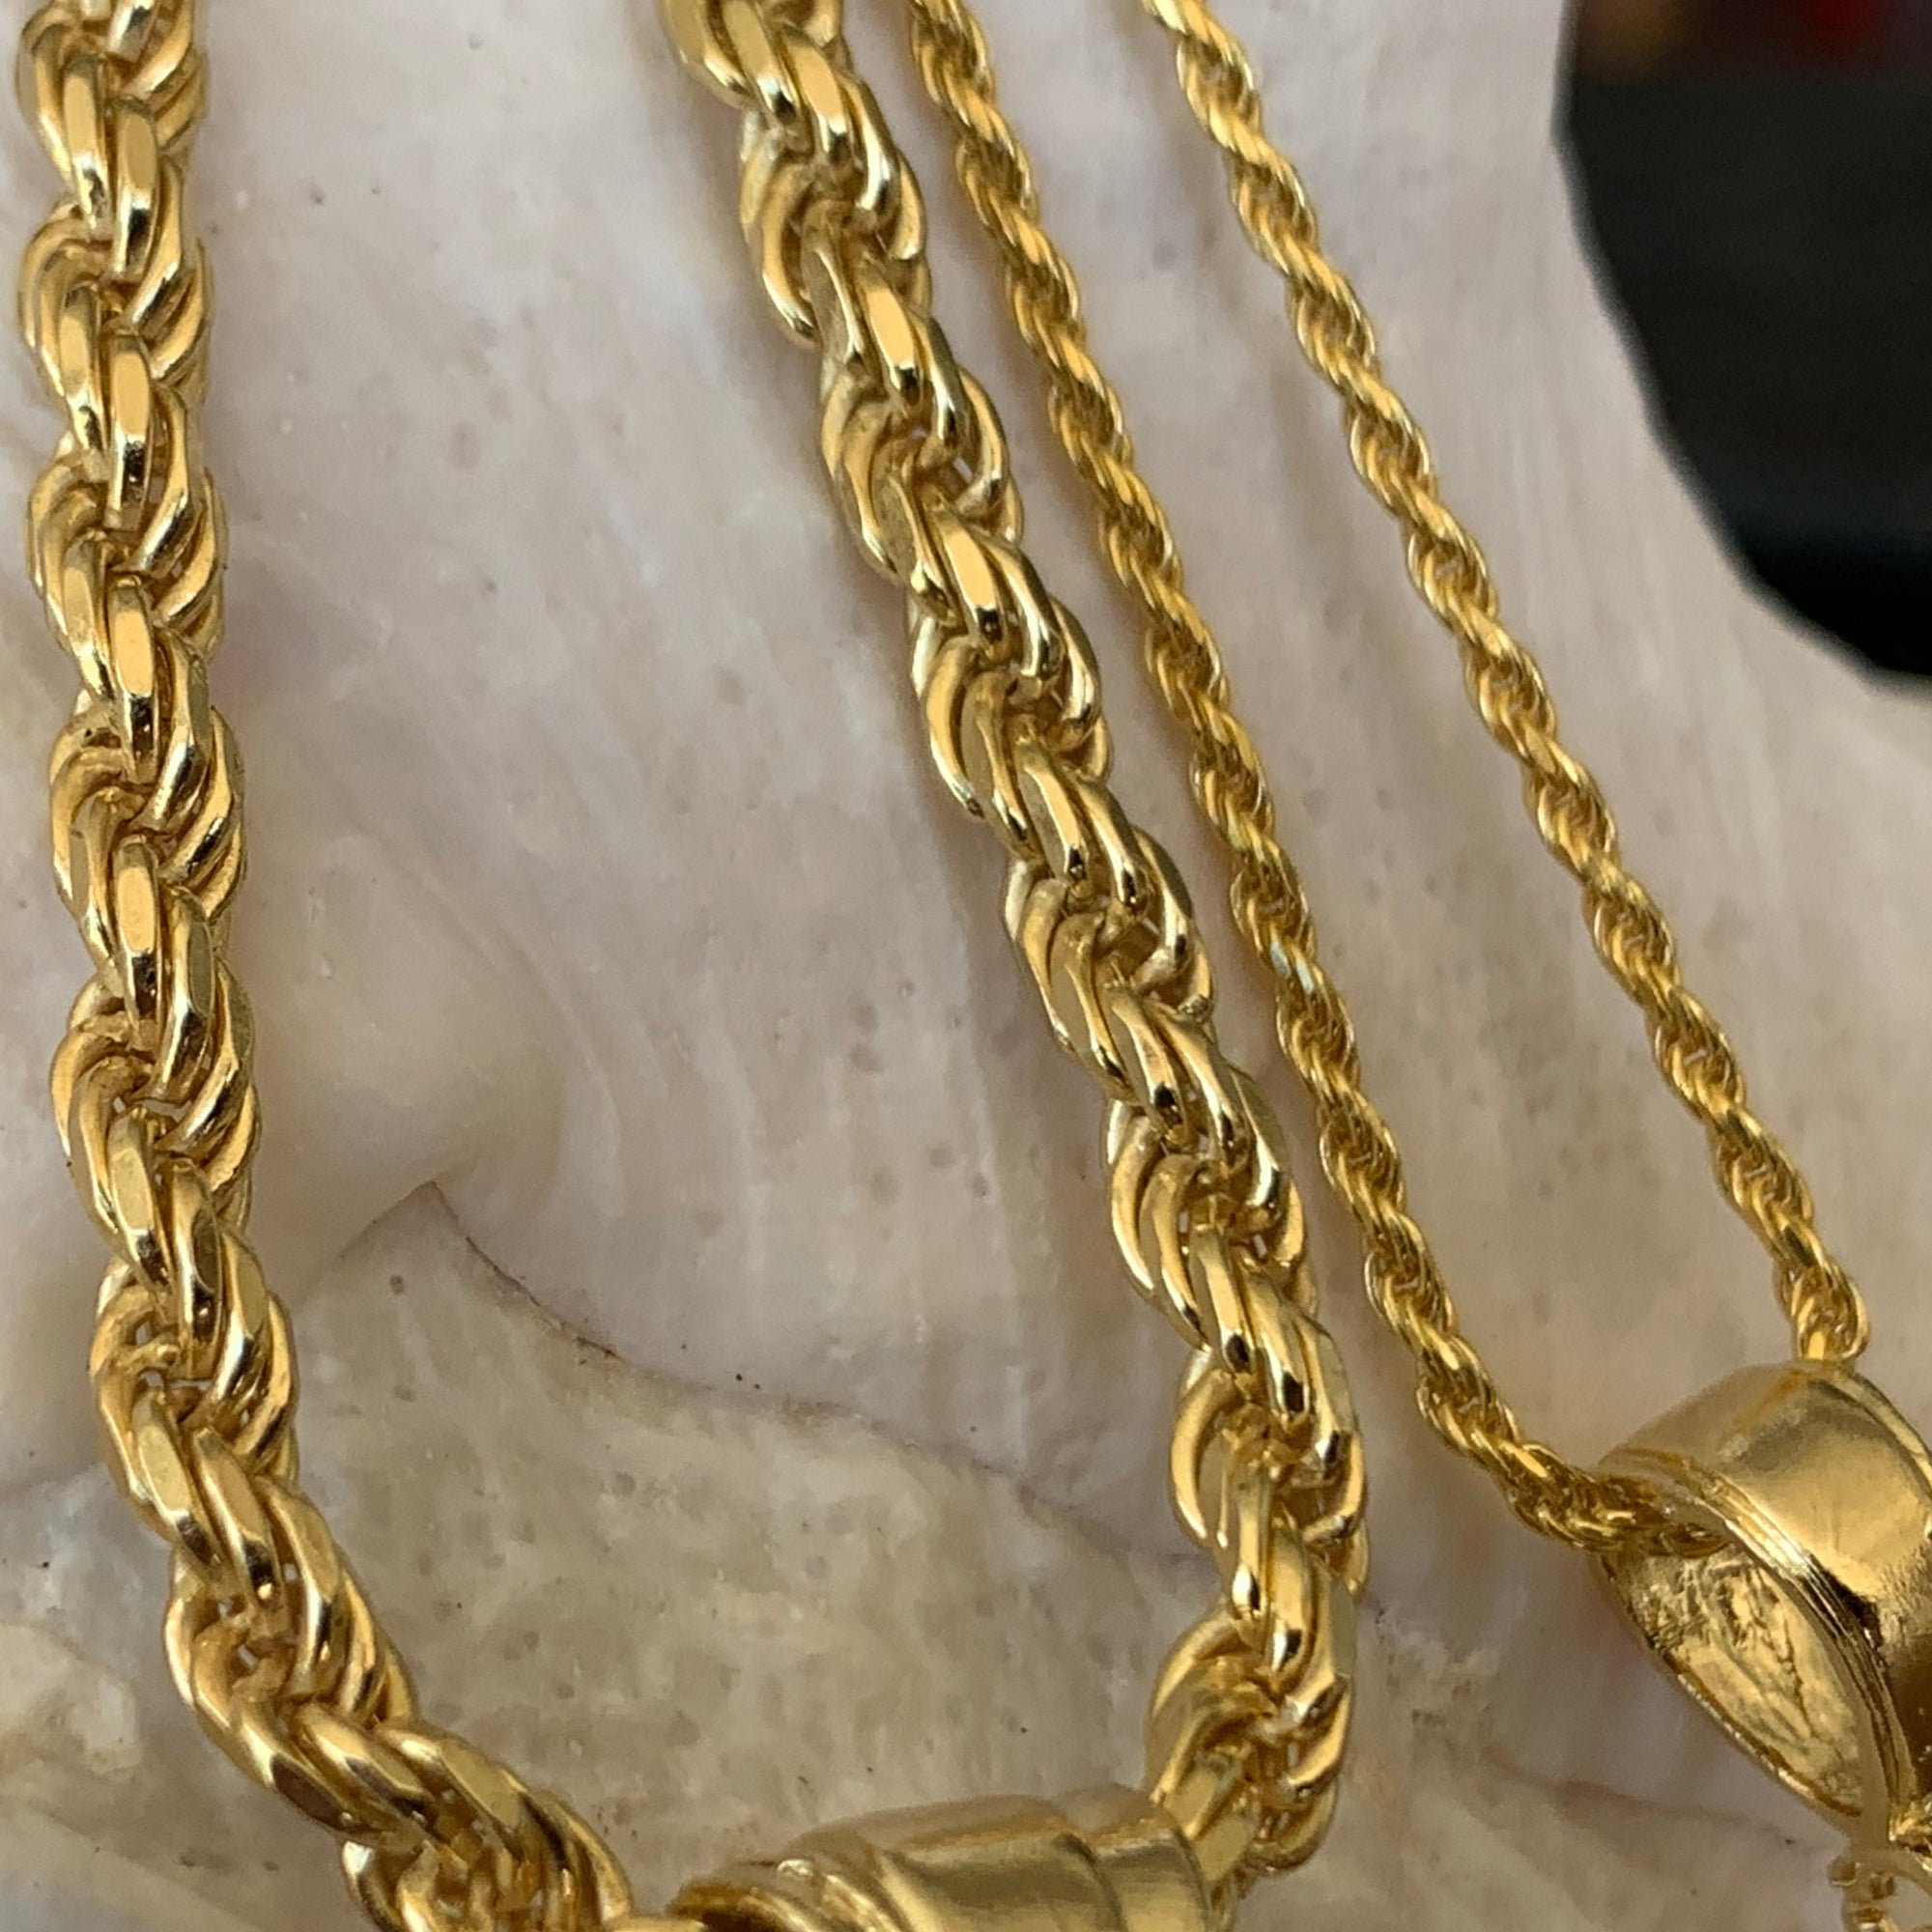 14K Gold Plated Rope Chains